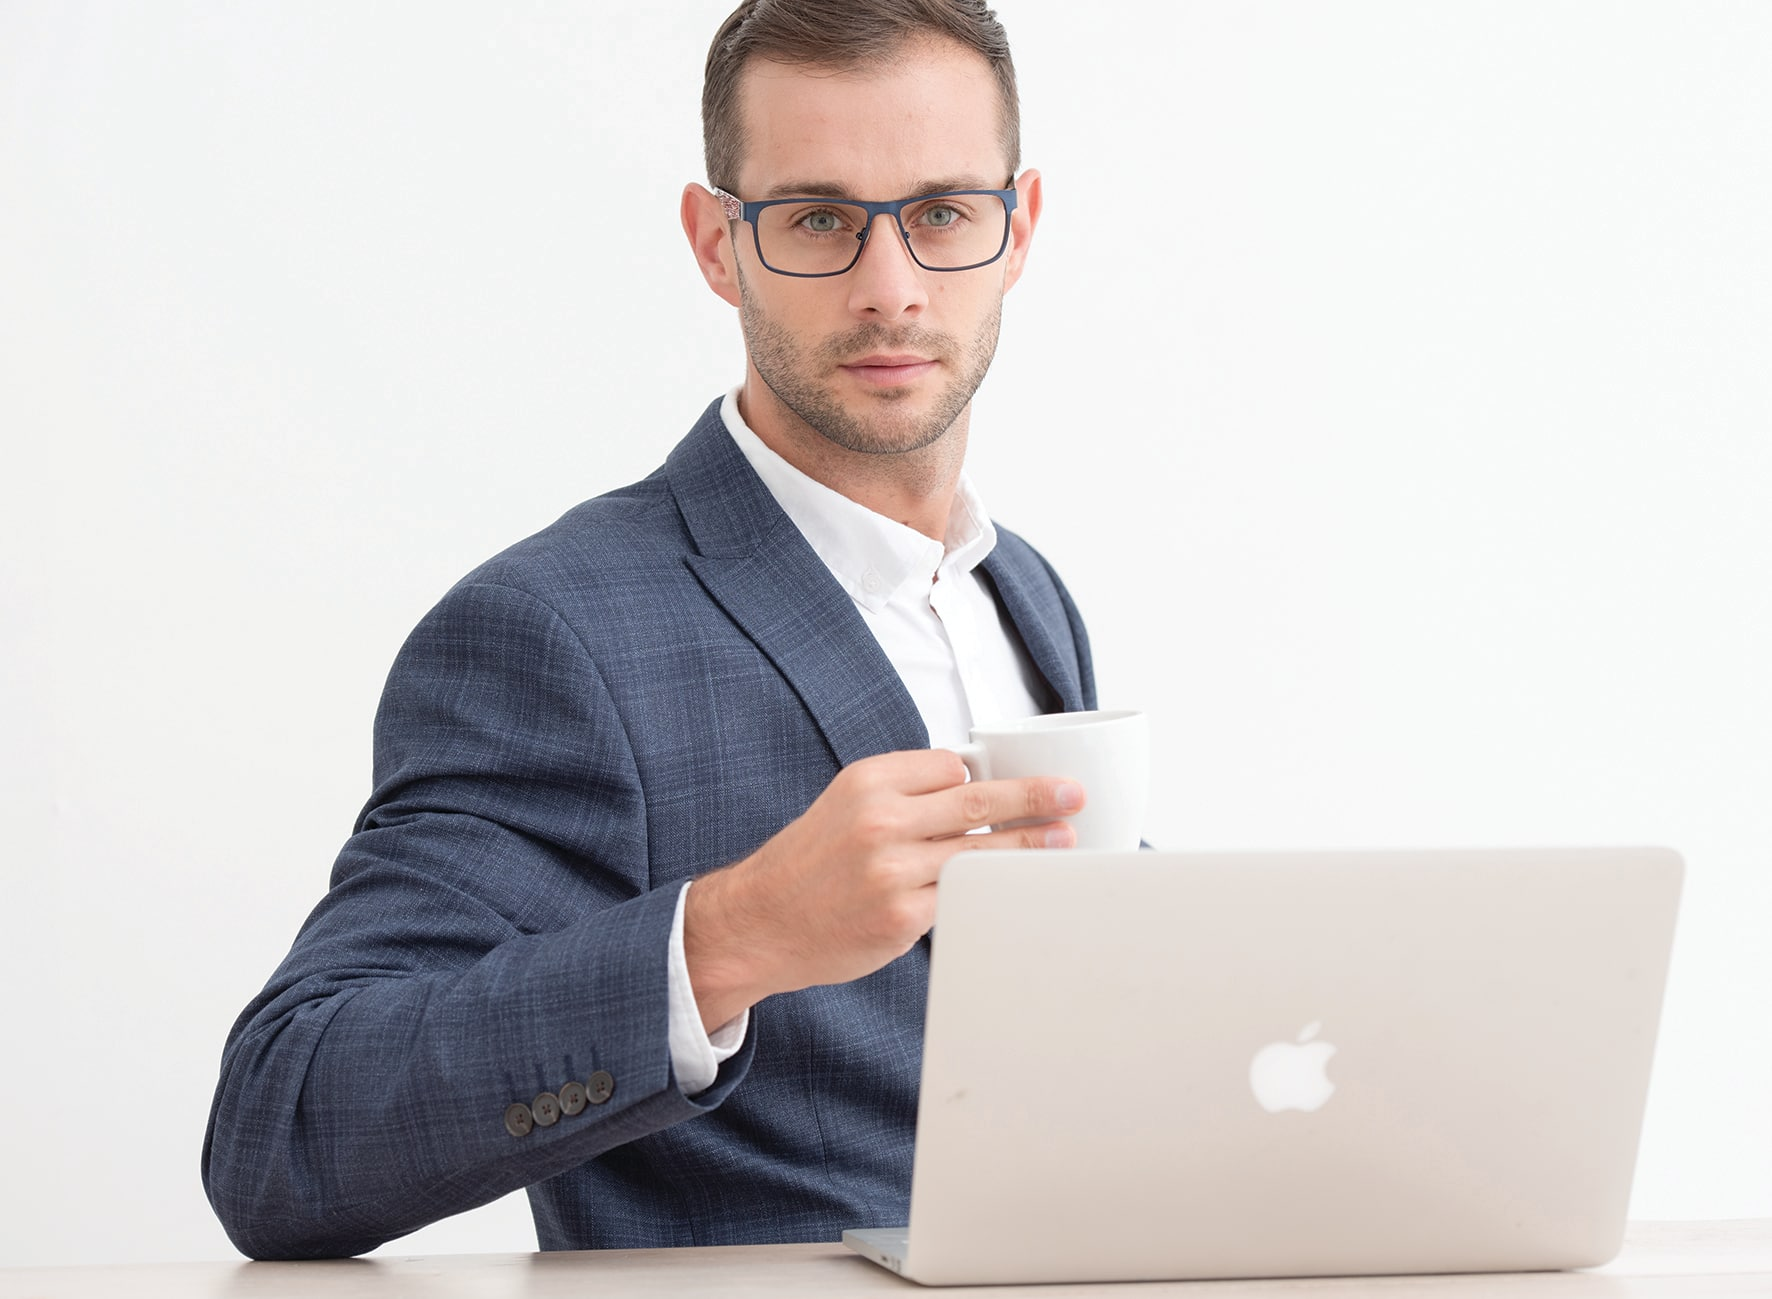 Young professional man with stubble and short brown hair sat at a Mac computer in a blue check suit and white button down shirt holding a coffee and wearing blue metal glasses with black and white contemporary pattern arms while holding a coffee